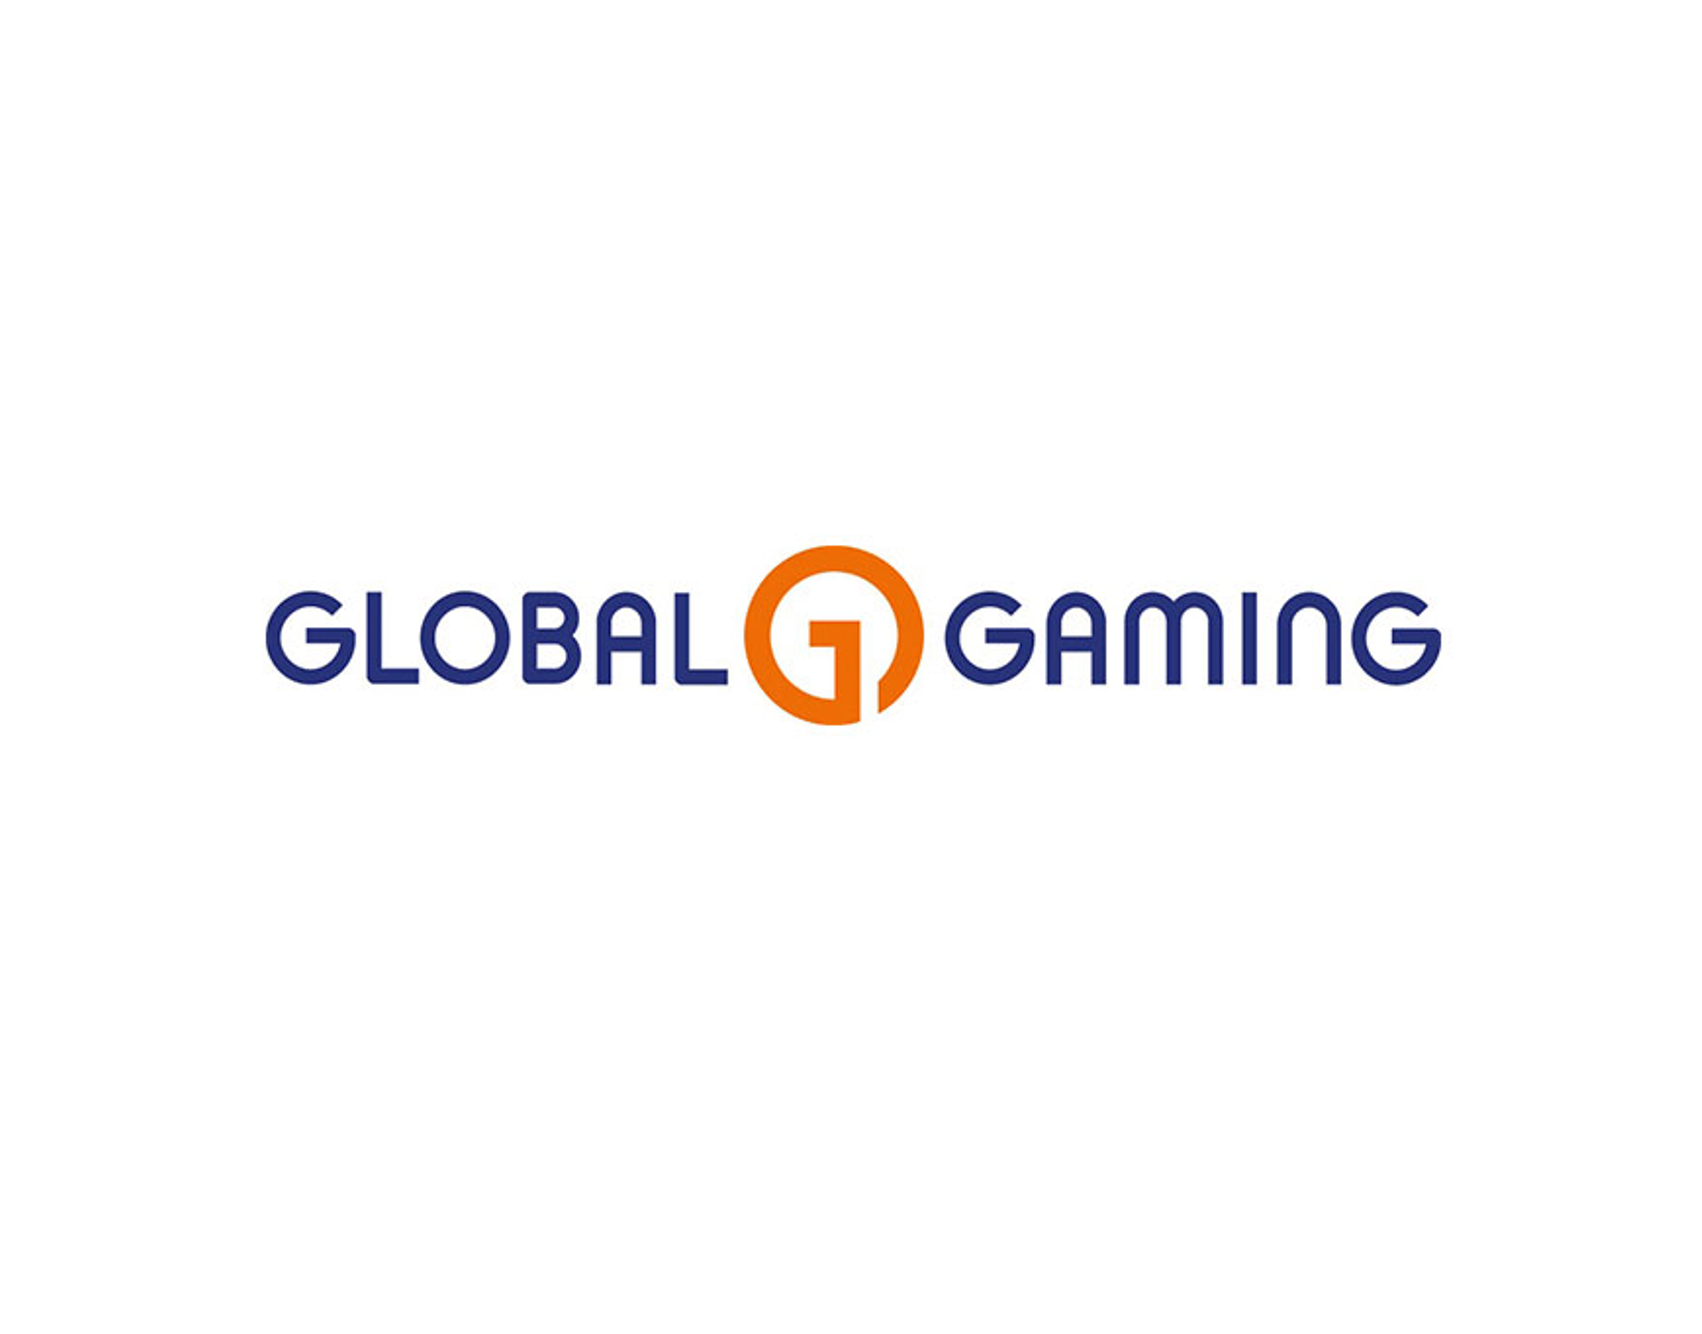 global gaming logo